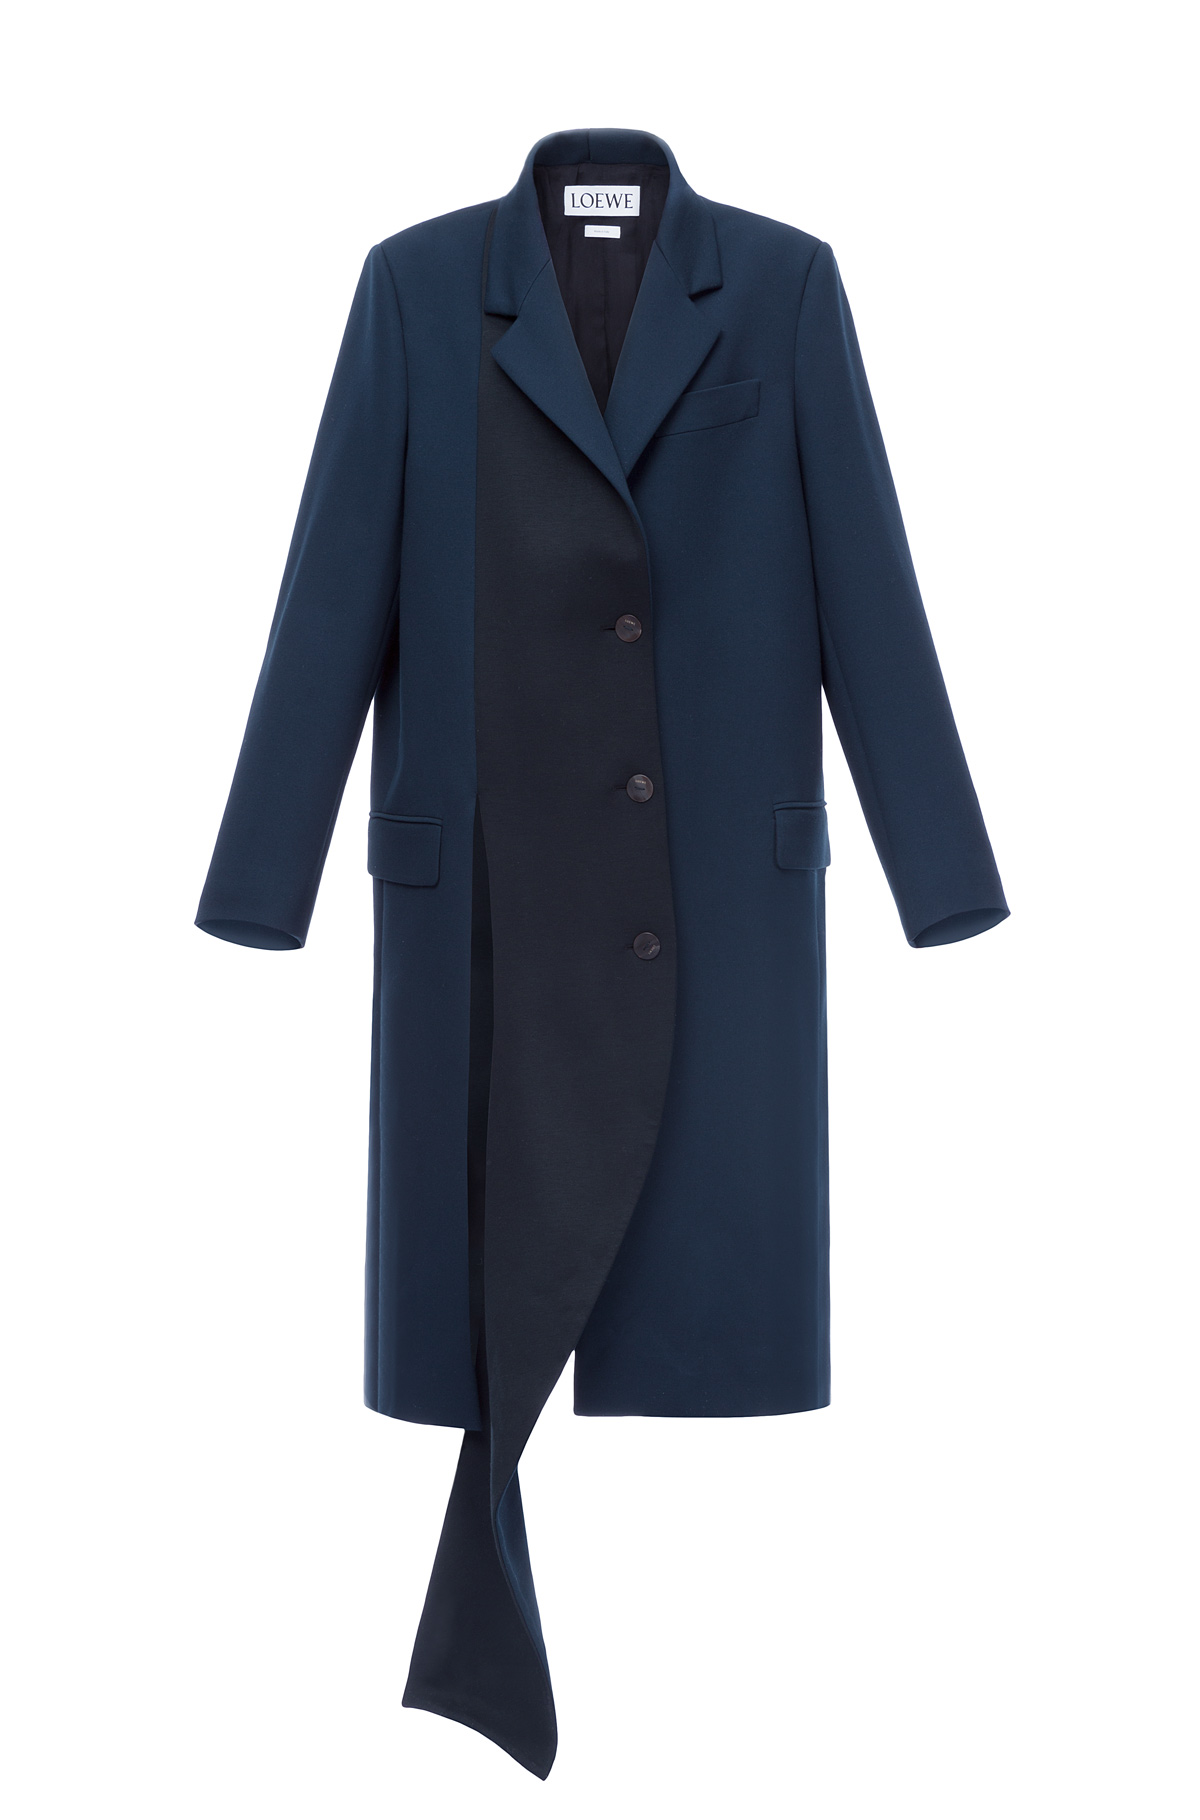 LOEWE Asymmetric Jersey Coat Black/Dark Navy front